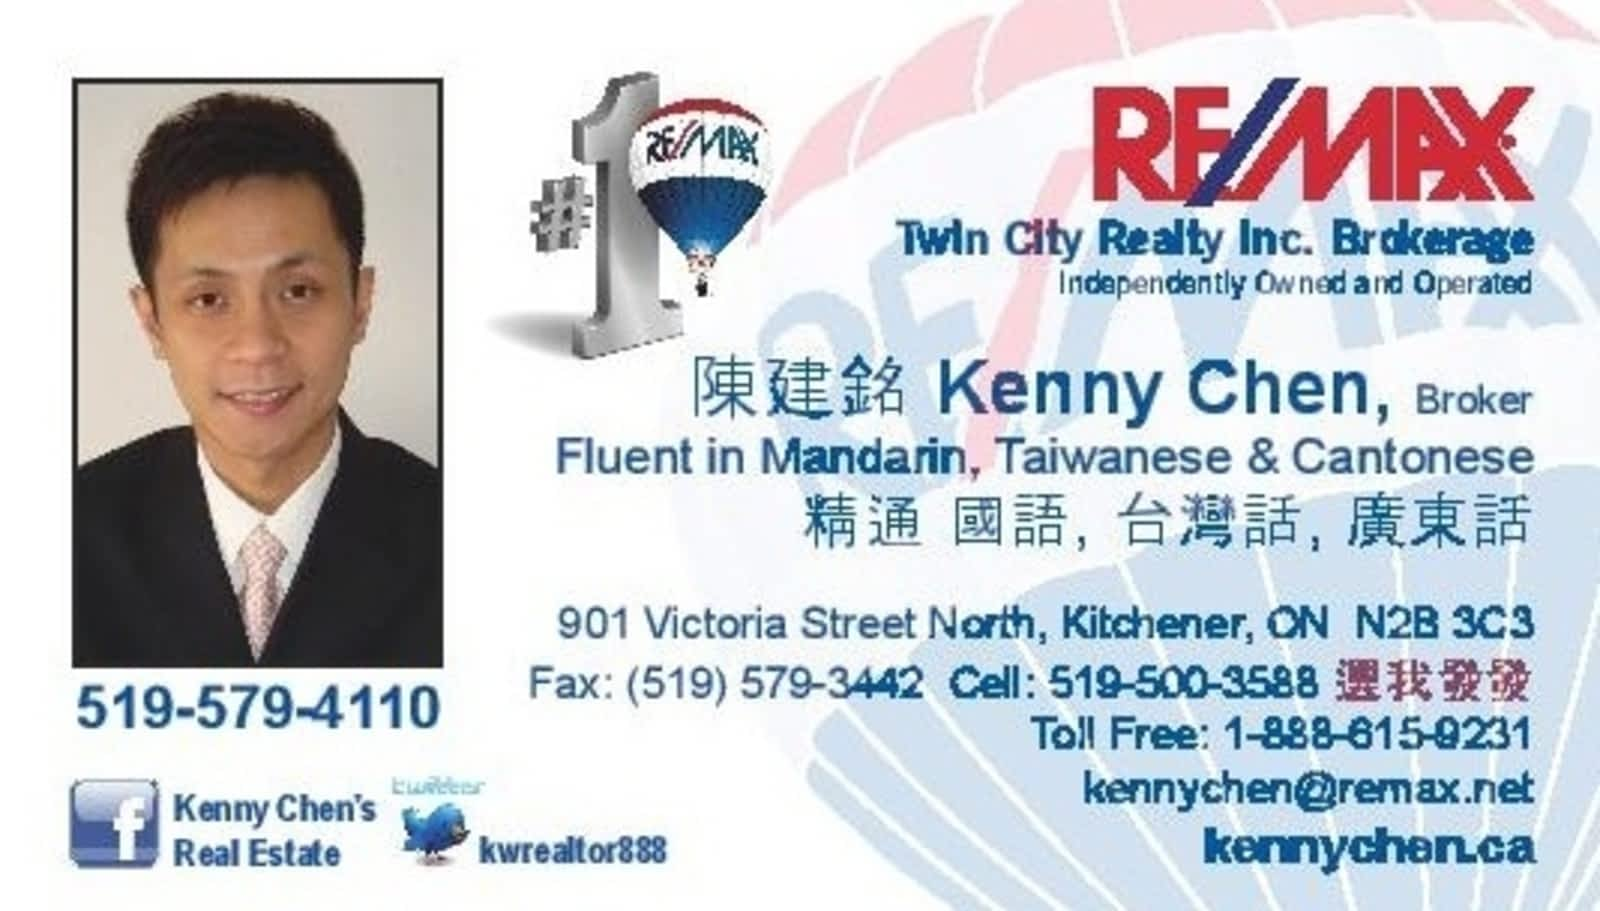 Kenny & Lori Chen - Opening Hours - 901 Victoria St N, Kitchener, ON